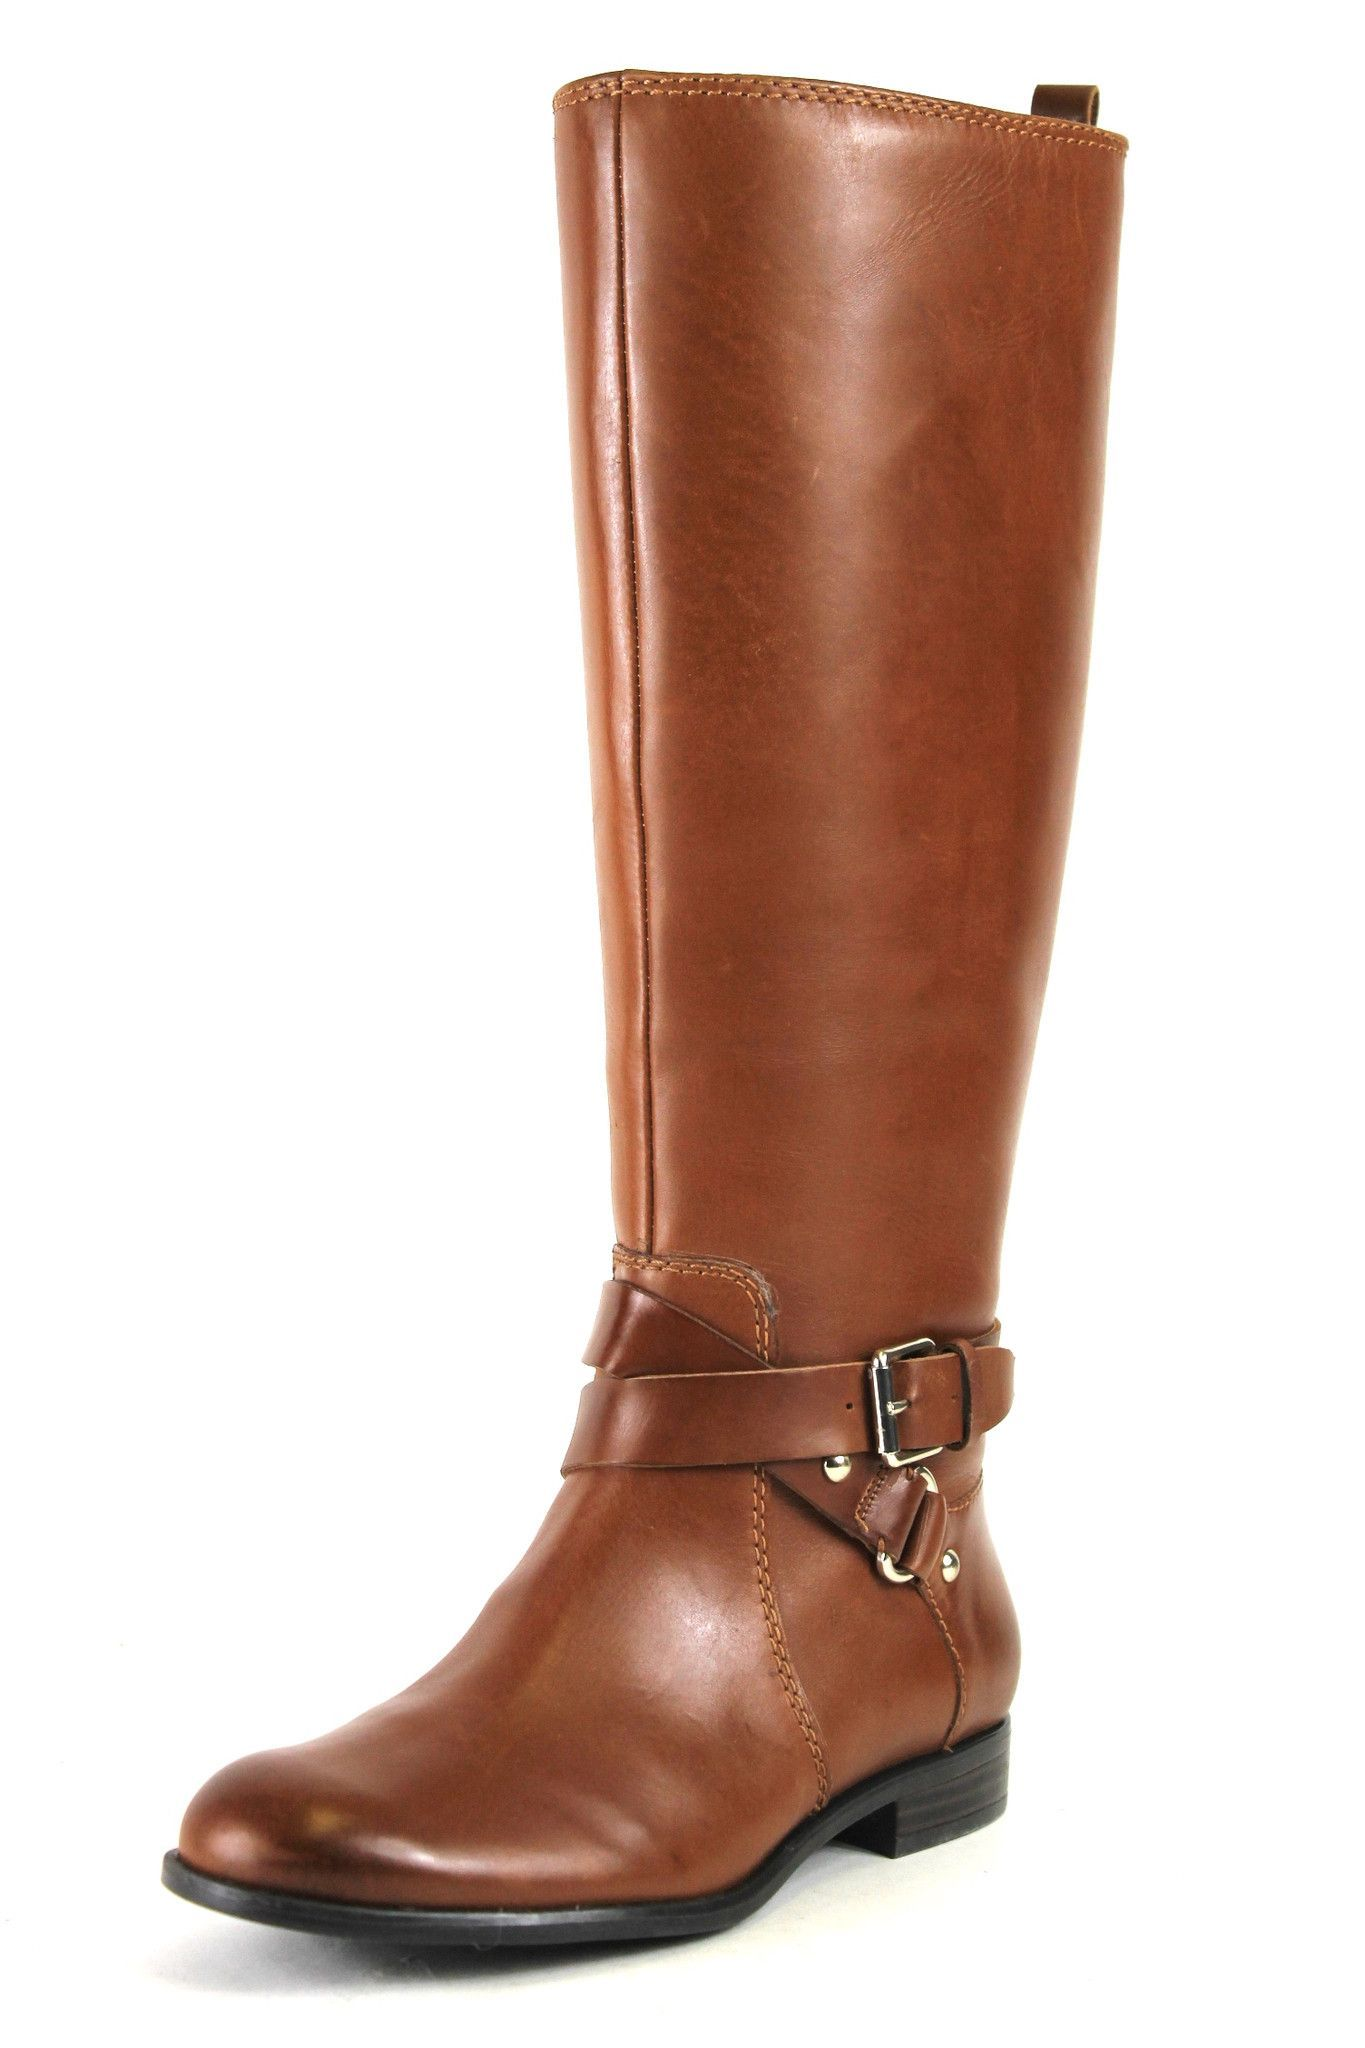 87948e33ac1 Enzo Angiolini Light Brown Daniana Wide Calf Boots